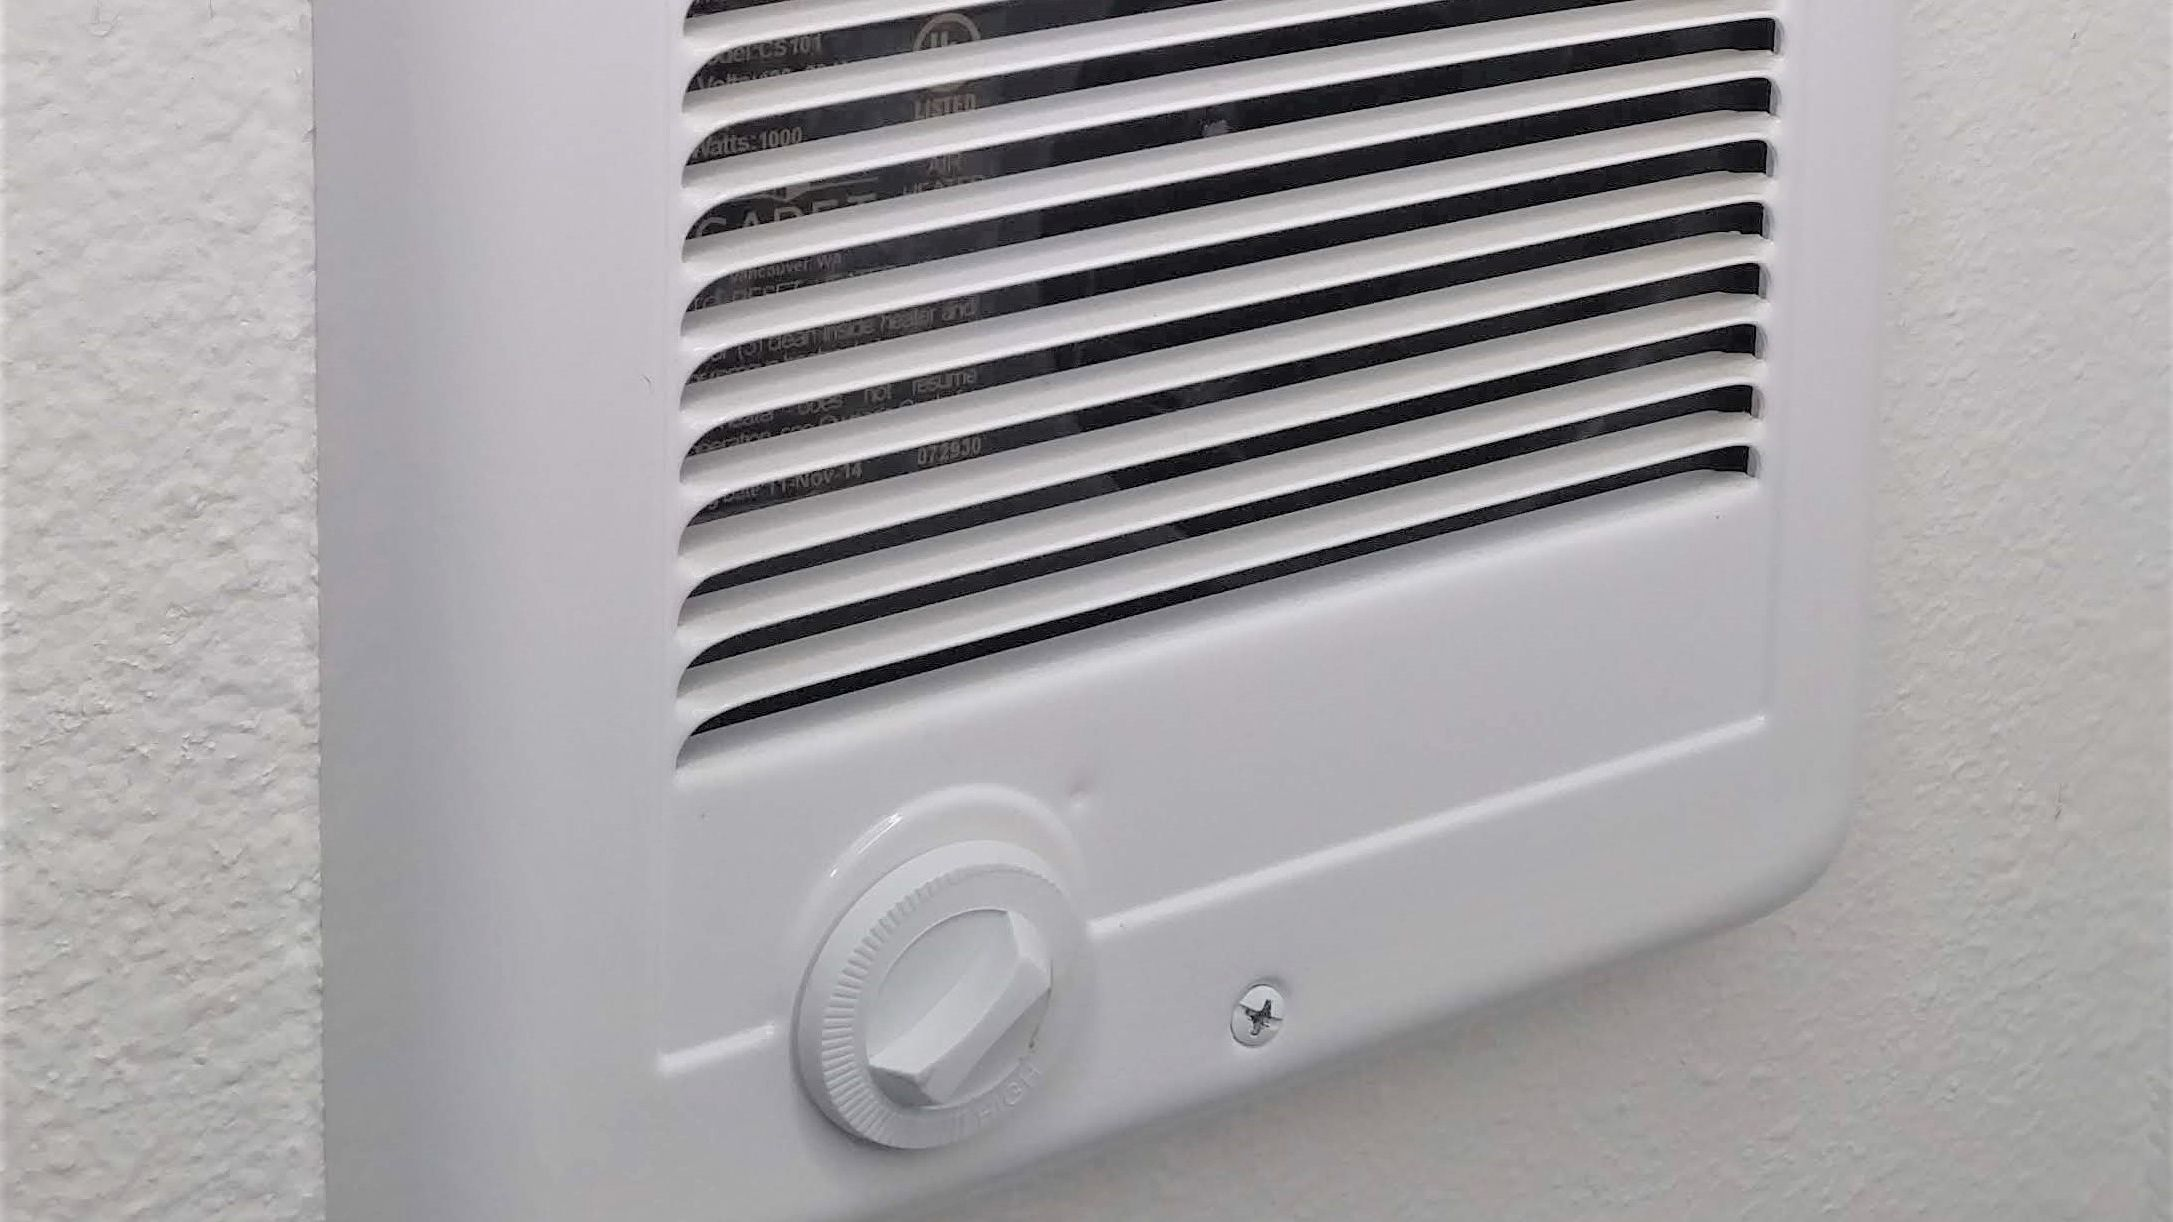 How To Repair A Wall Mounted Electric Heater